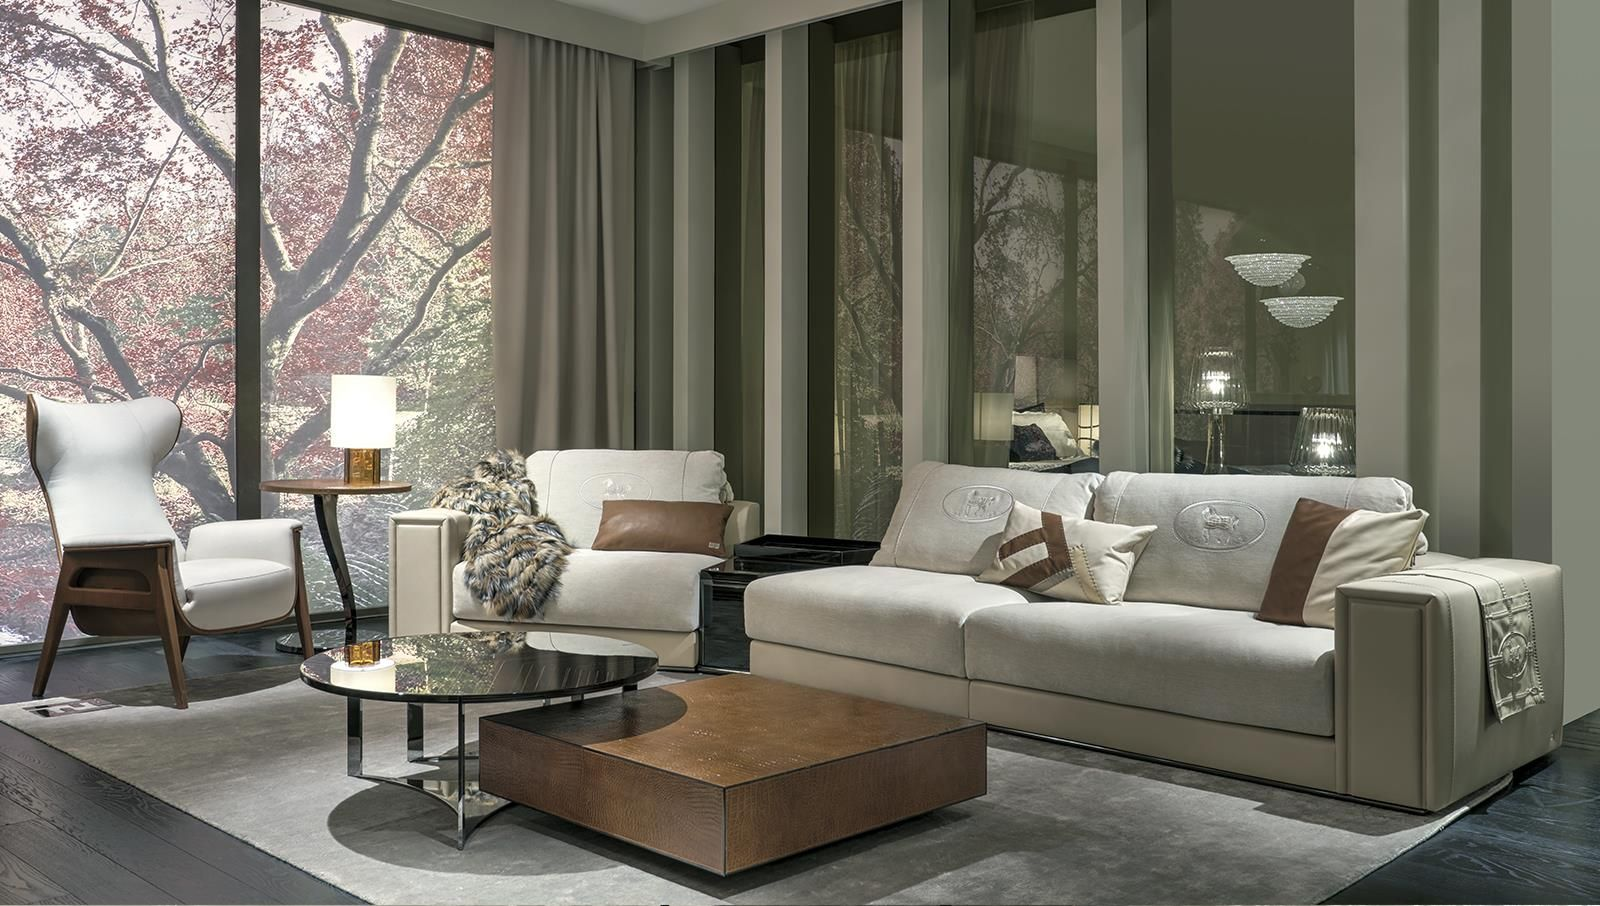 Fendi Casa Interior Collections By Luxury Living Group Fendi